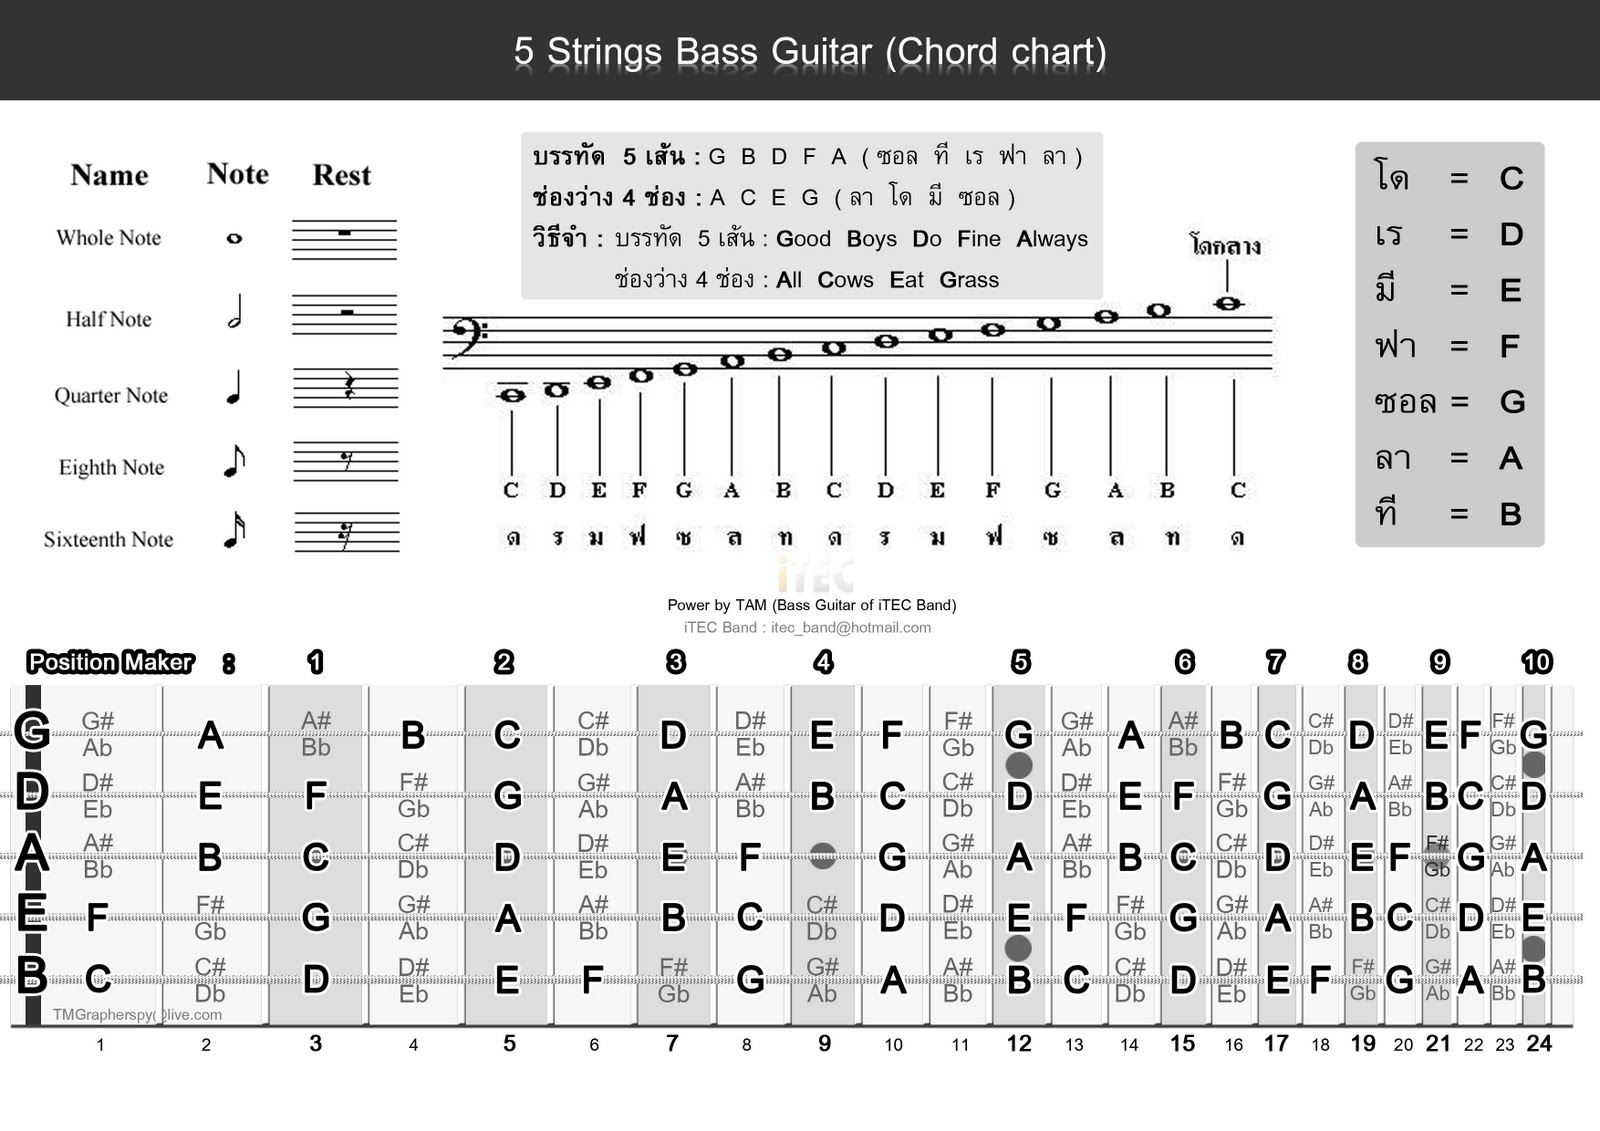 5 string bass notes chart - Music Search Engine at Search.com